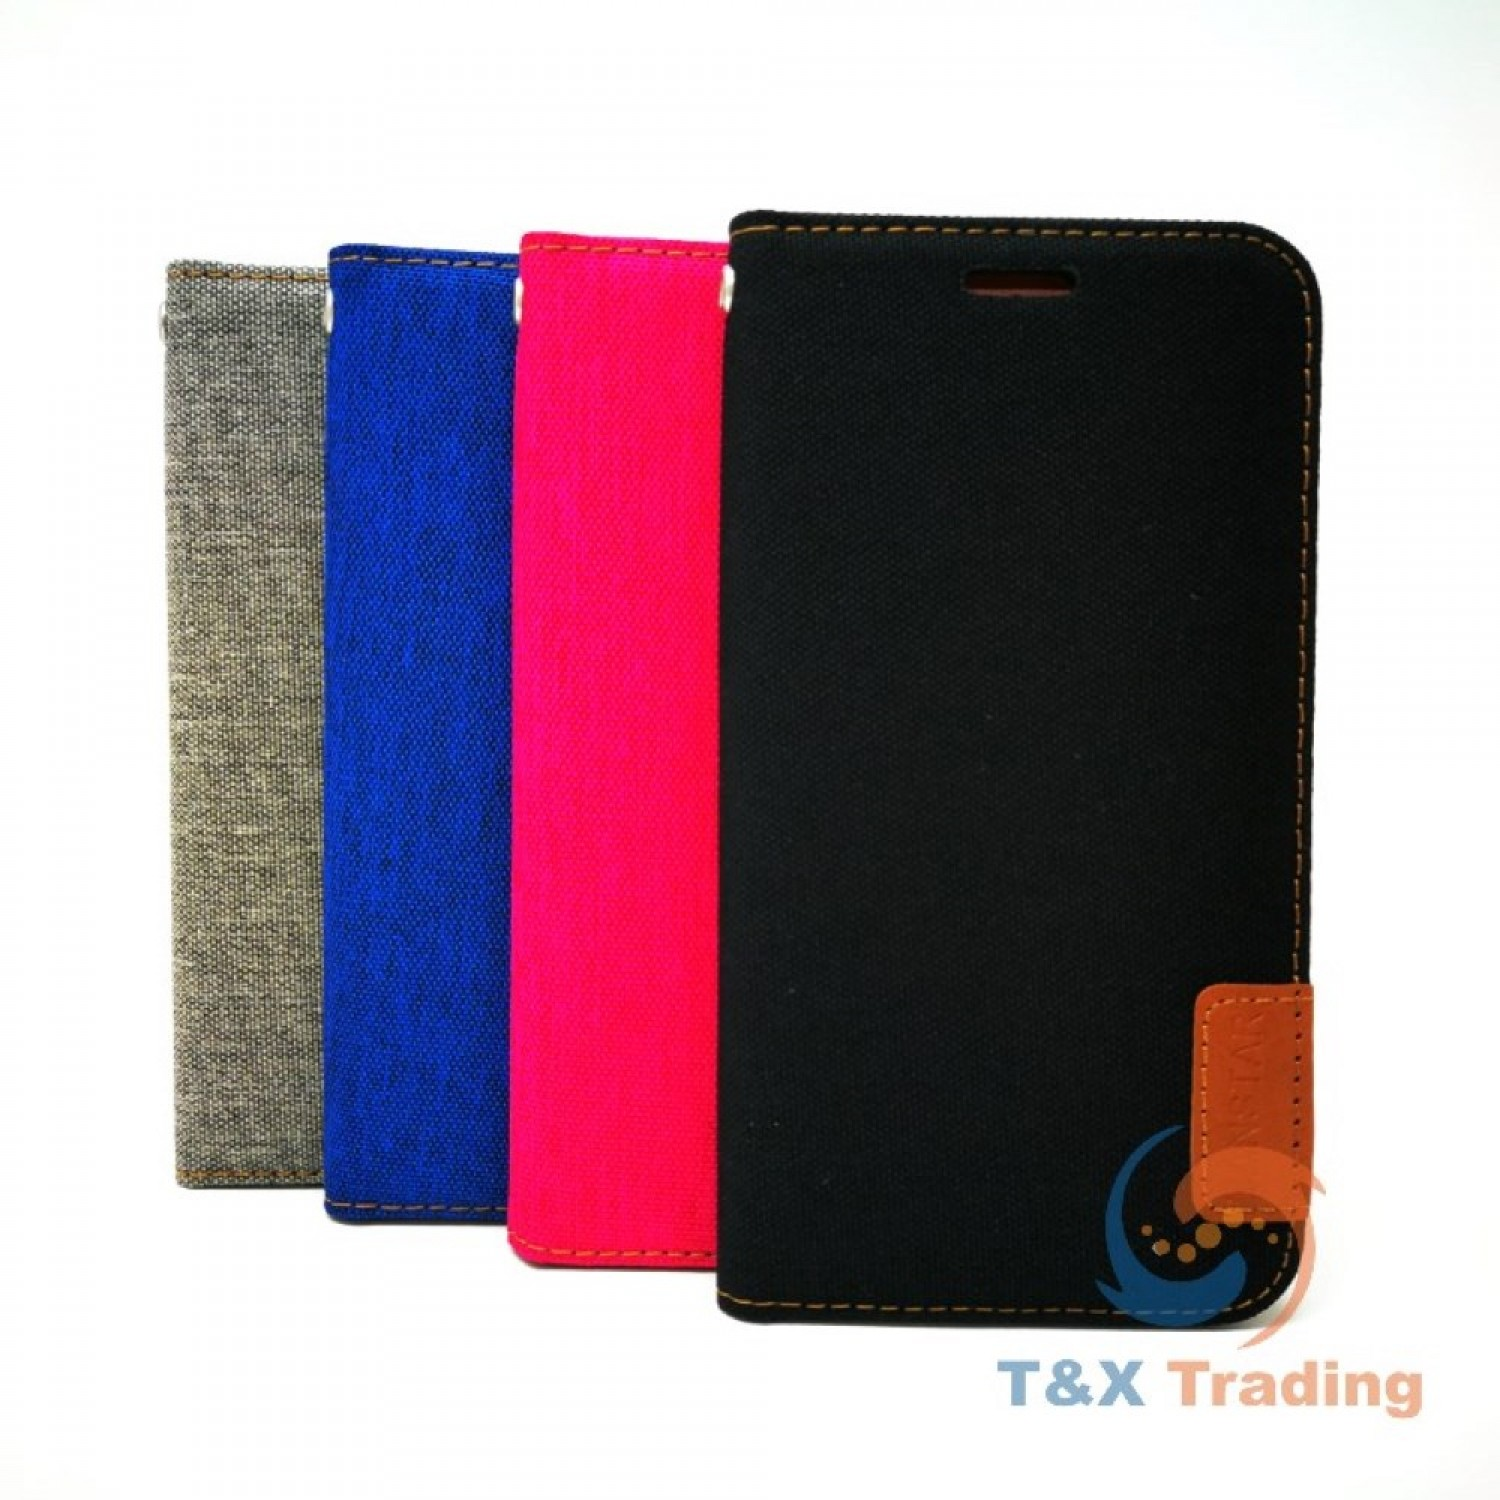 Apple iPhone XS Max - TanStar Fabric Wallet Case with Magnetic Closure